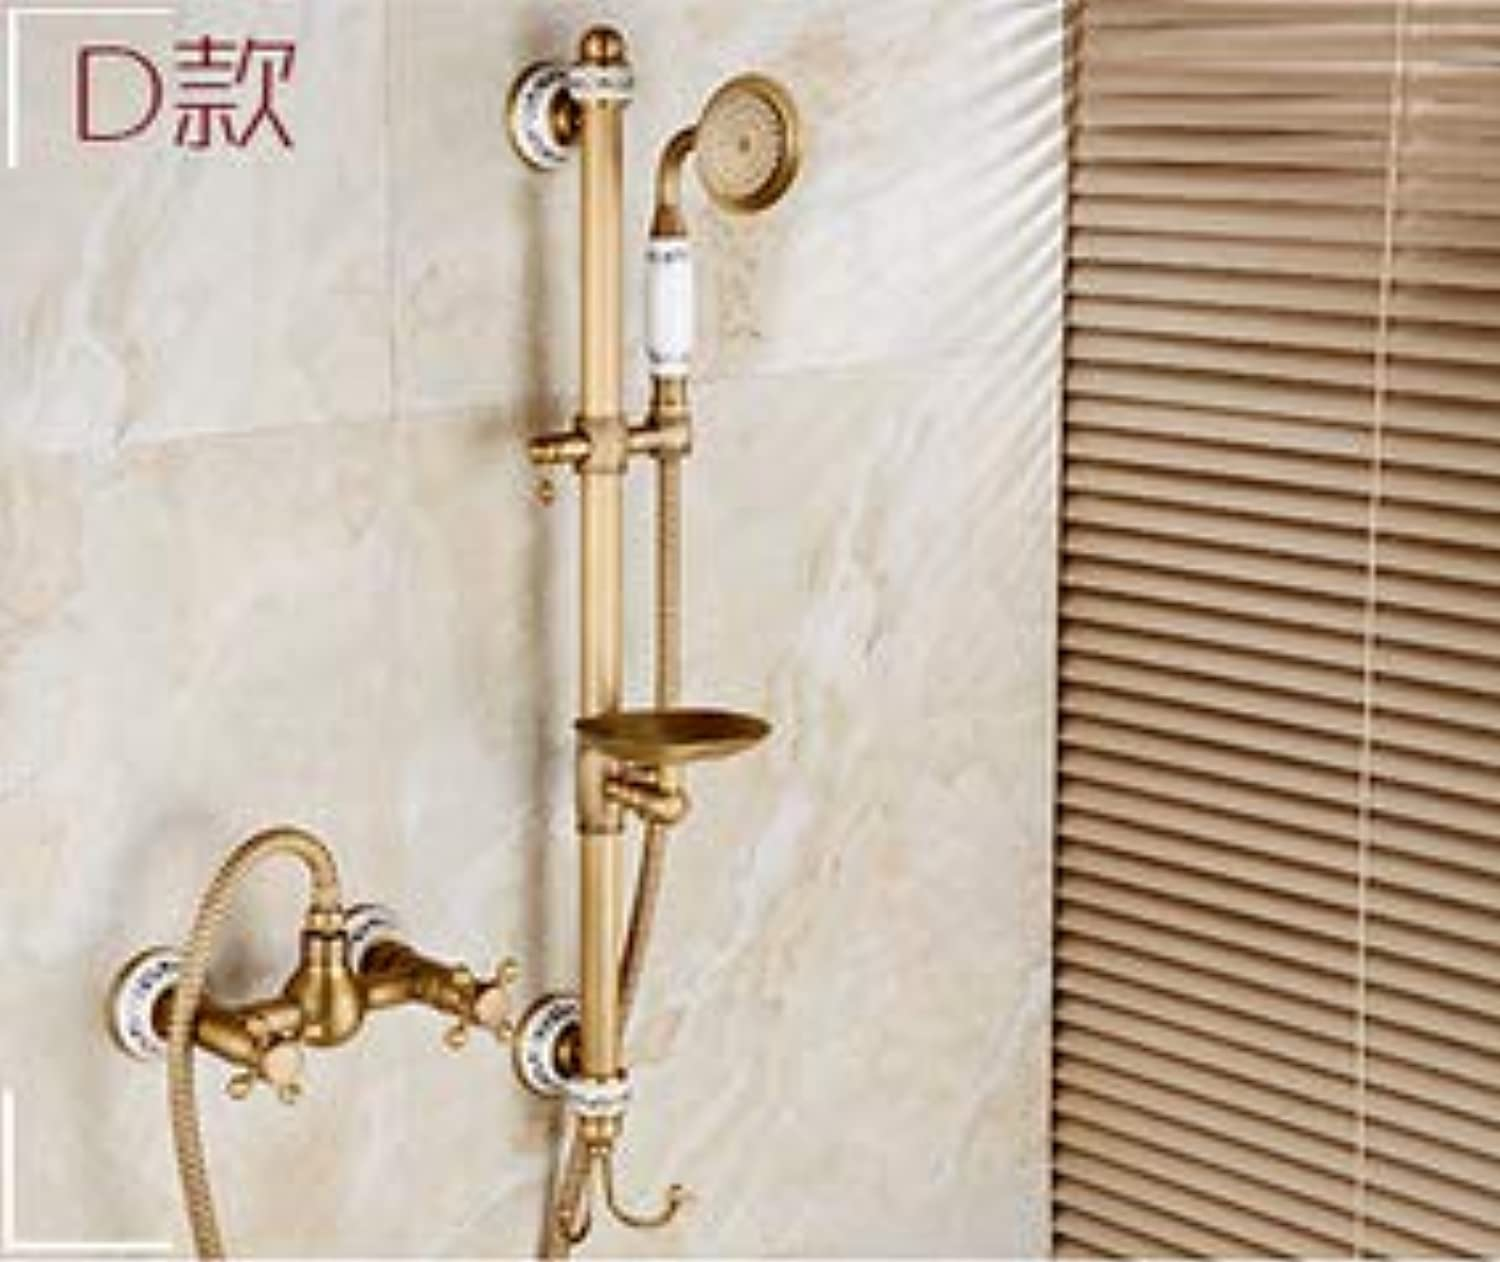 Fashion top high quality total Brass Gold Europe style wall mounted Bathtub Shower Set bathroom shower set faucet tap mixer,Burgundy